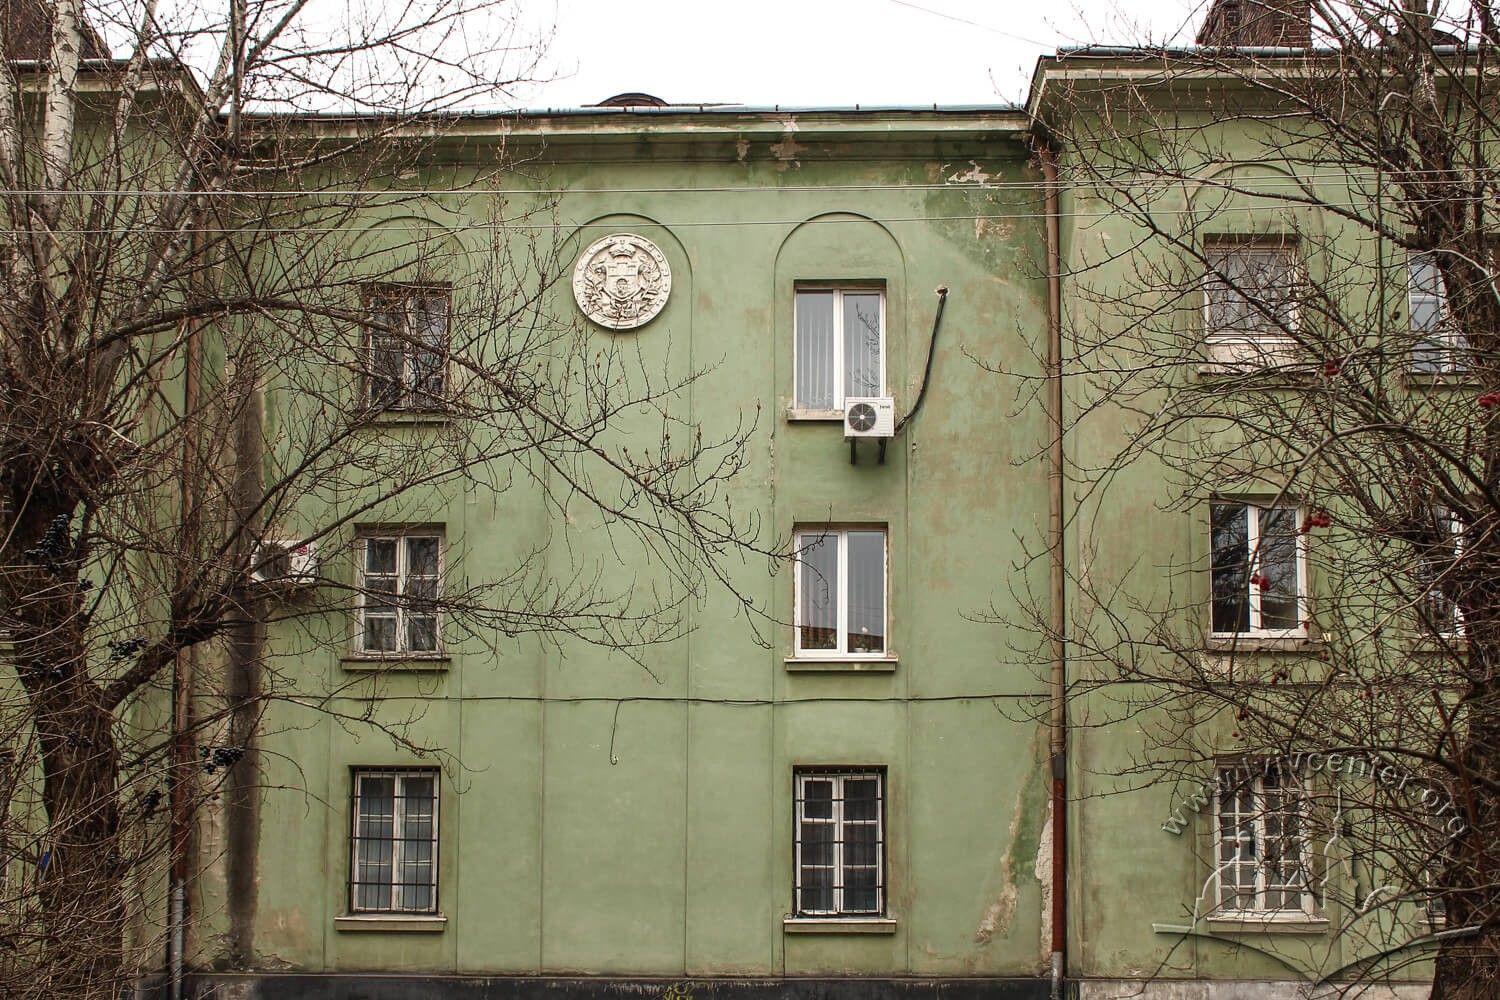 Vul. Donetska, 3. Section of the main facade with Lviv's coat-of-arms/Photo courtesy of Olha Zarechnyuk, 2016